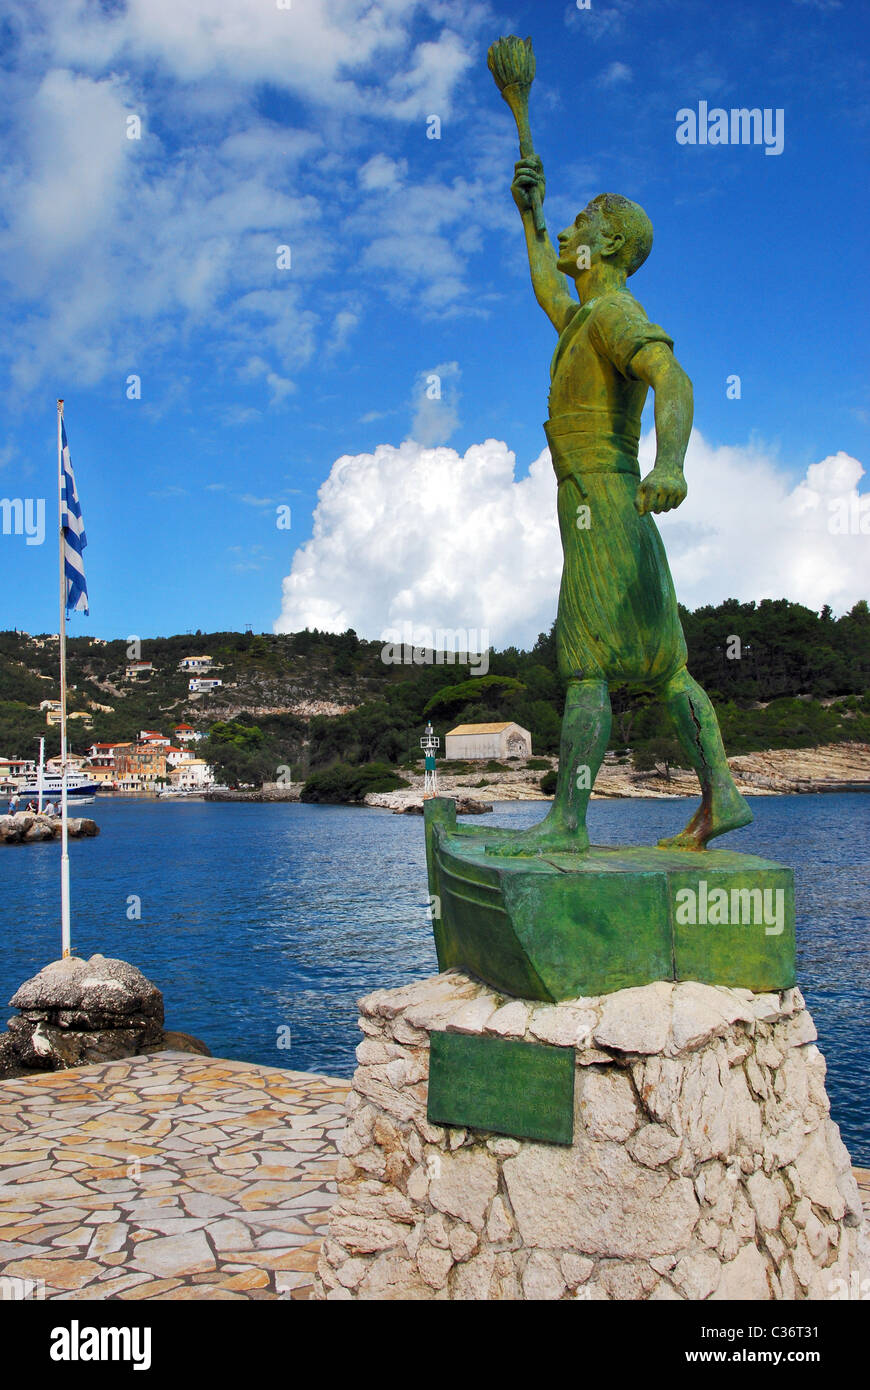 The statue of Captain Georgios Anemogiannis guarding the harbour of Gaios on the Island of Paxos, Greece - Stock Image